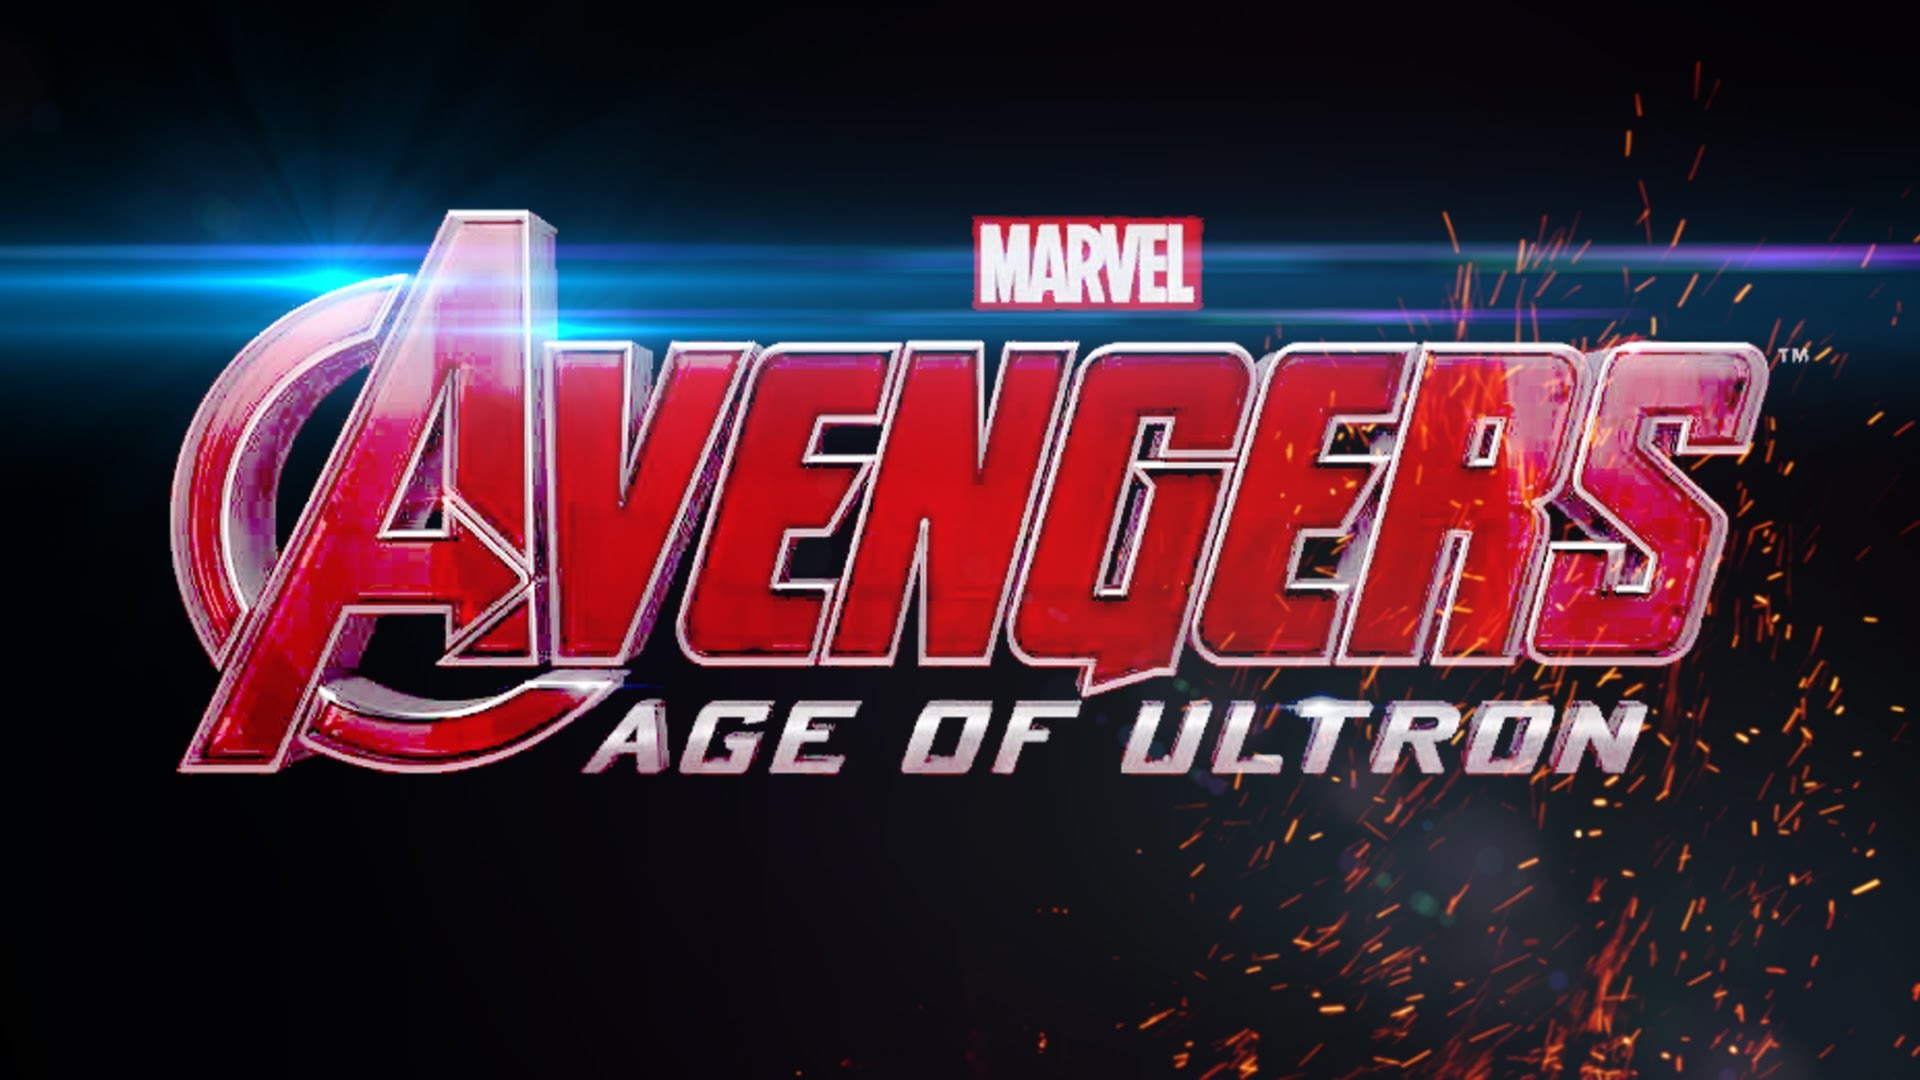 First Official Trailer For Avengers: Age of Ultron